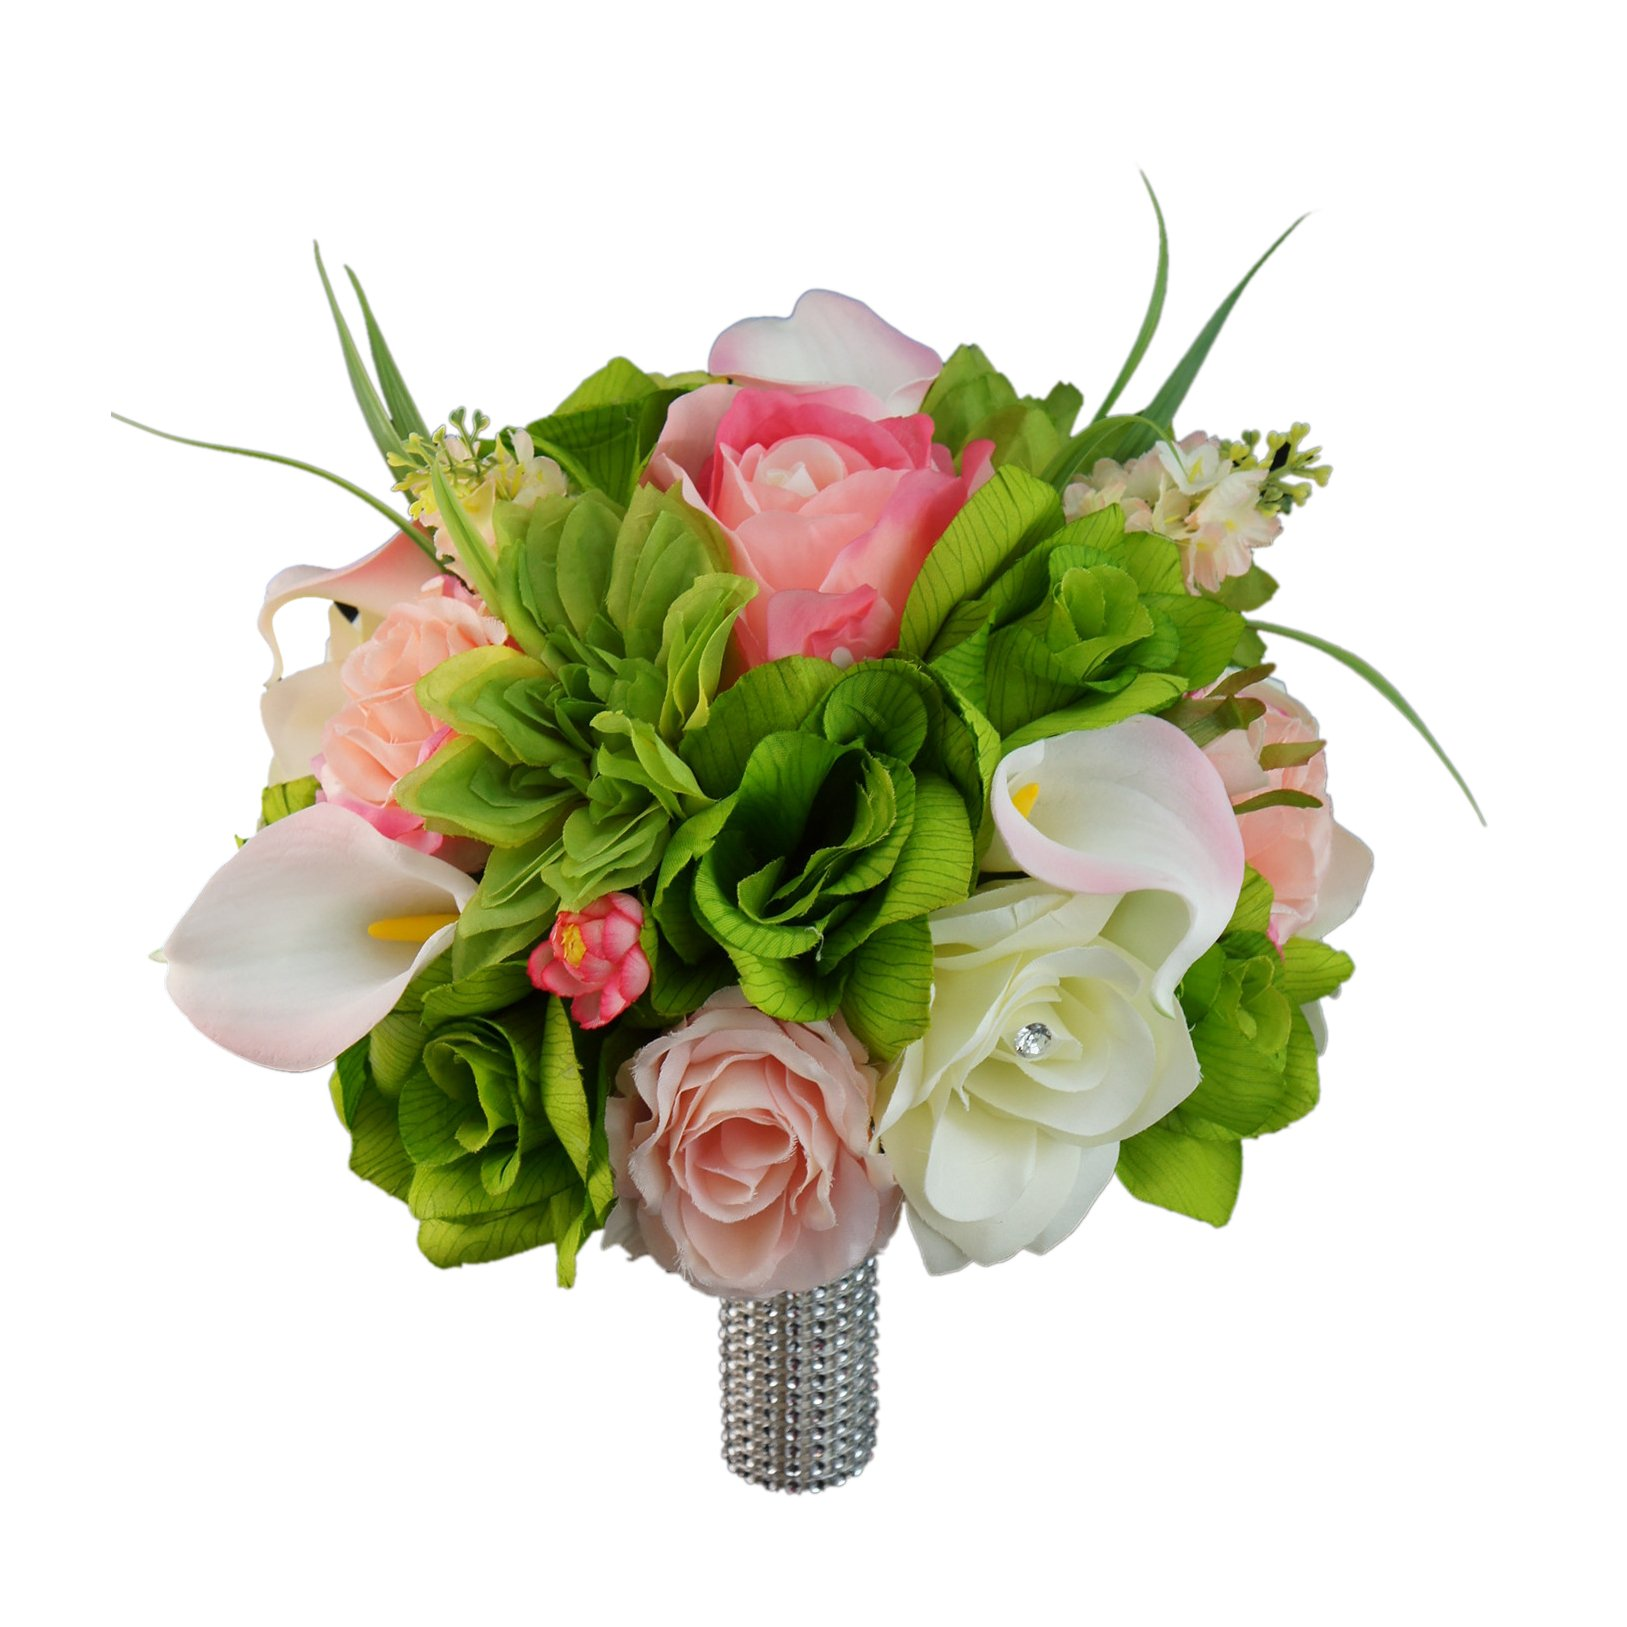 10'' Large Bouquet-shades of Green,pink,and Ivory.rose,lily and Greenery